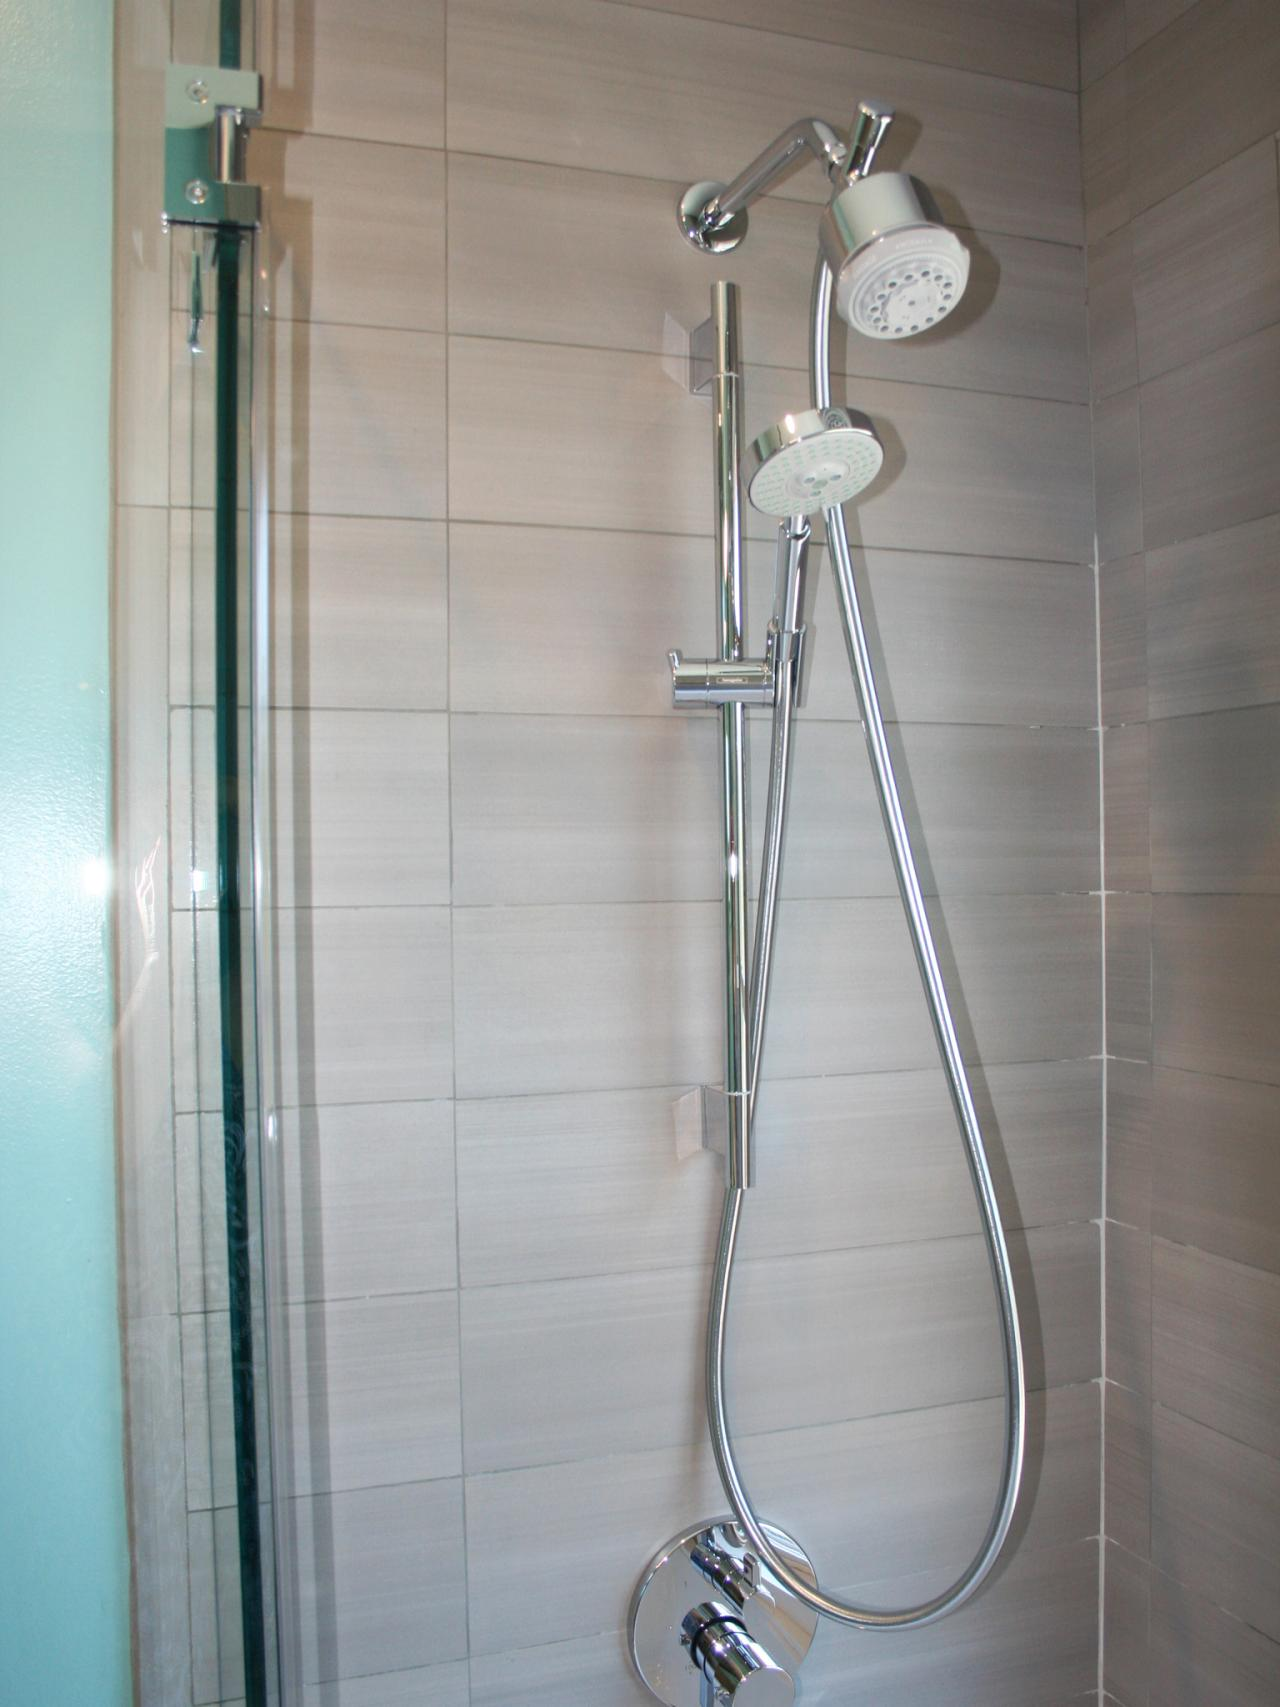 Bathroom showers head - Dual Head Shower System